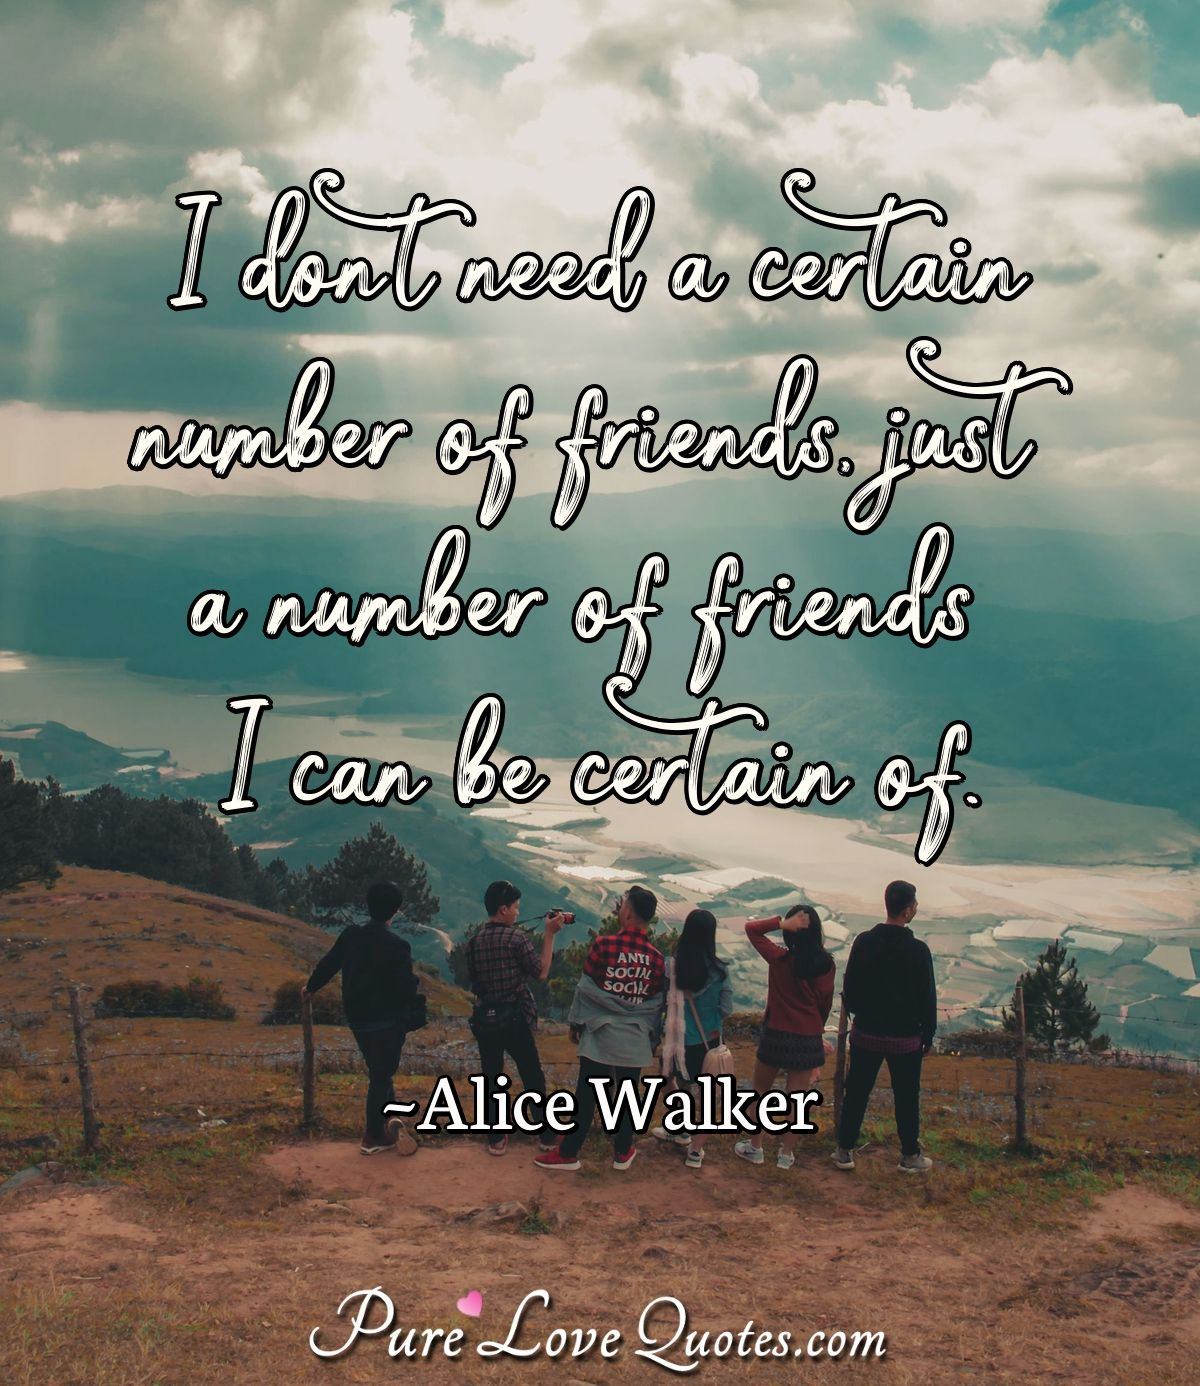 I don't need a certain number of friends, just a number of friends I can be certain of. - Alice Walker